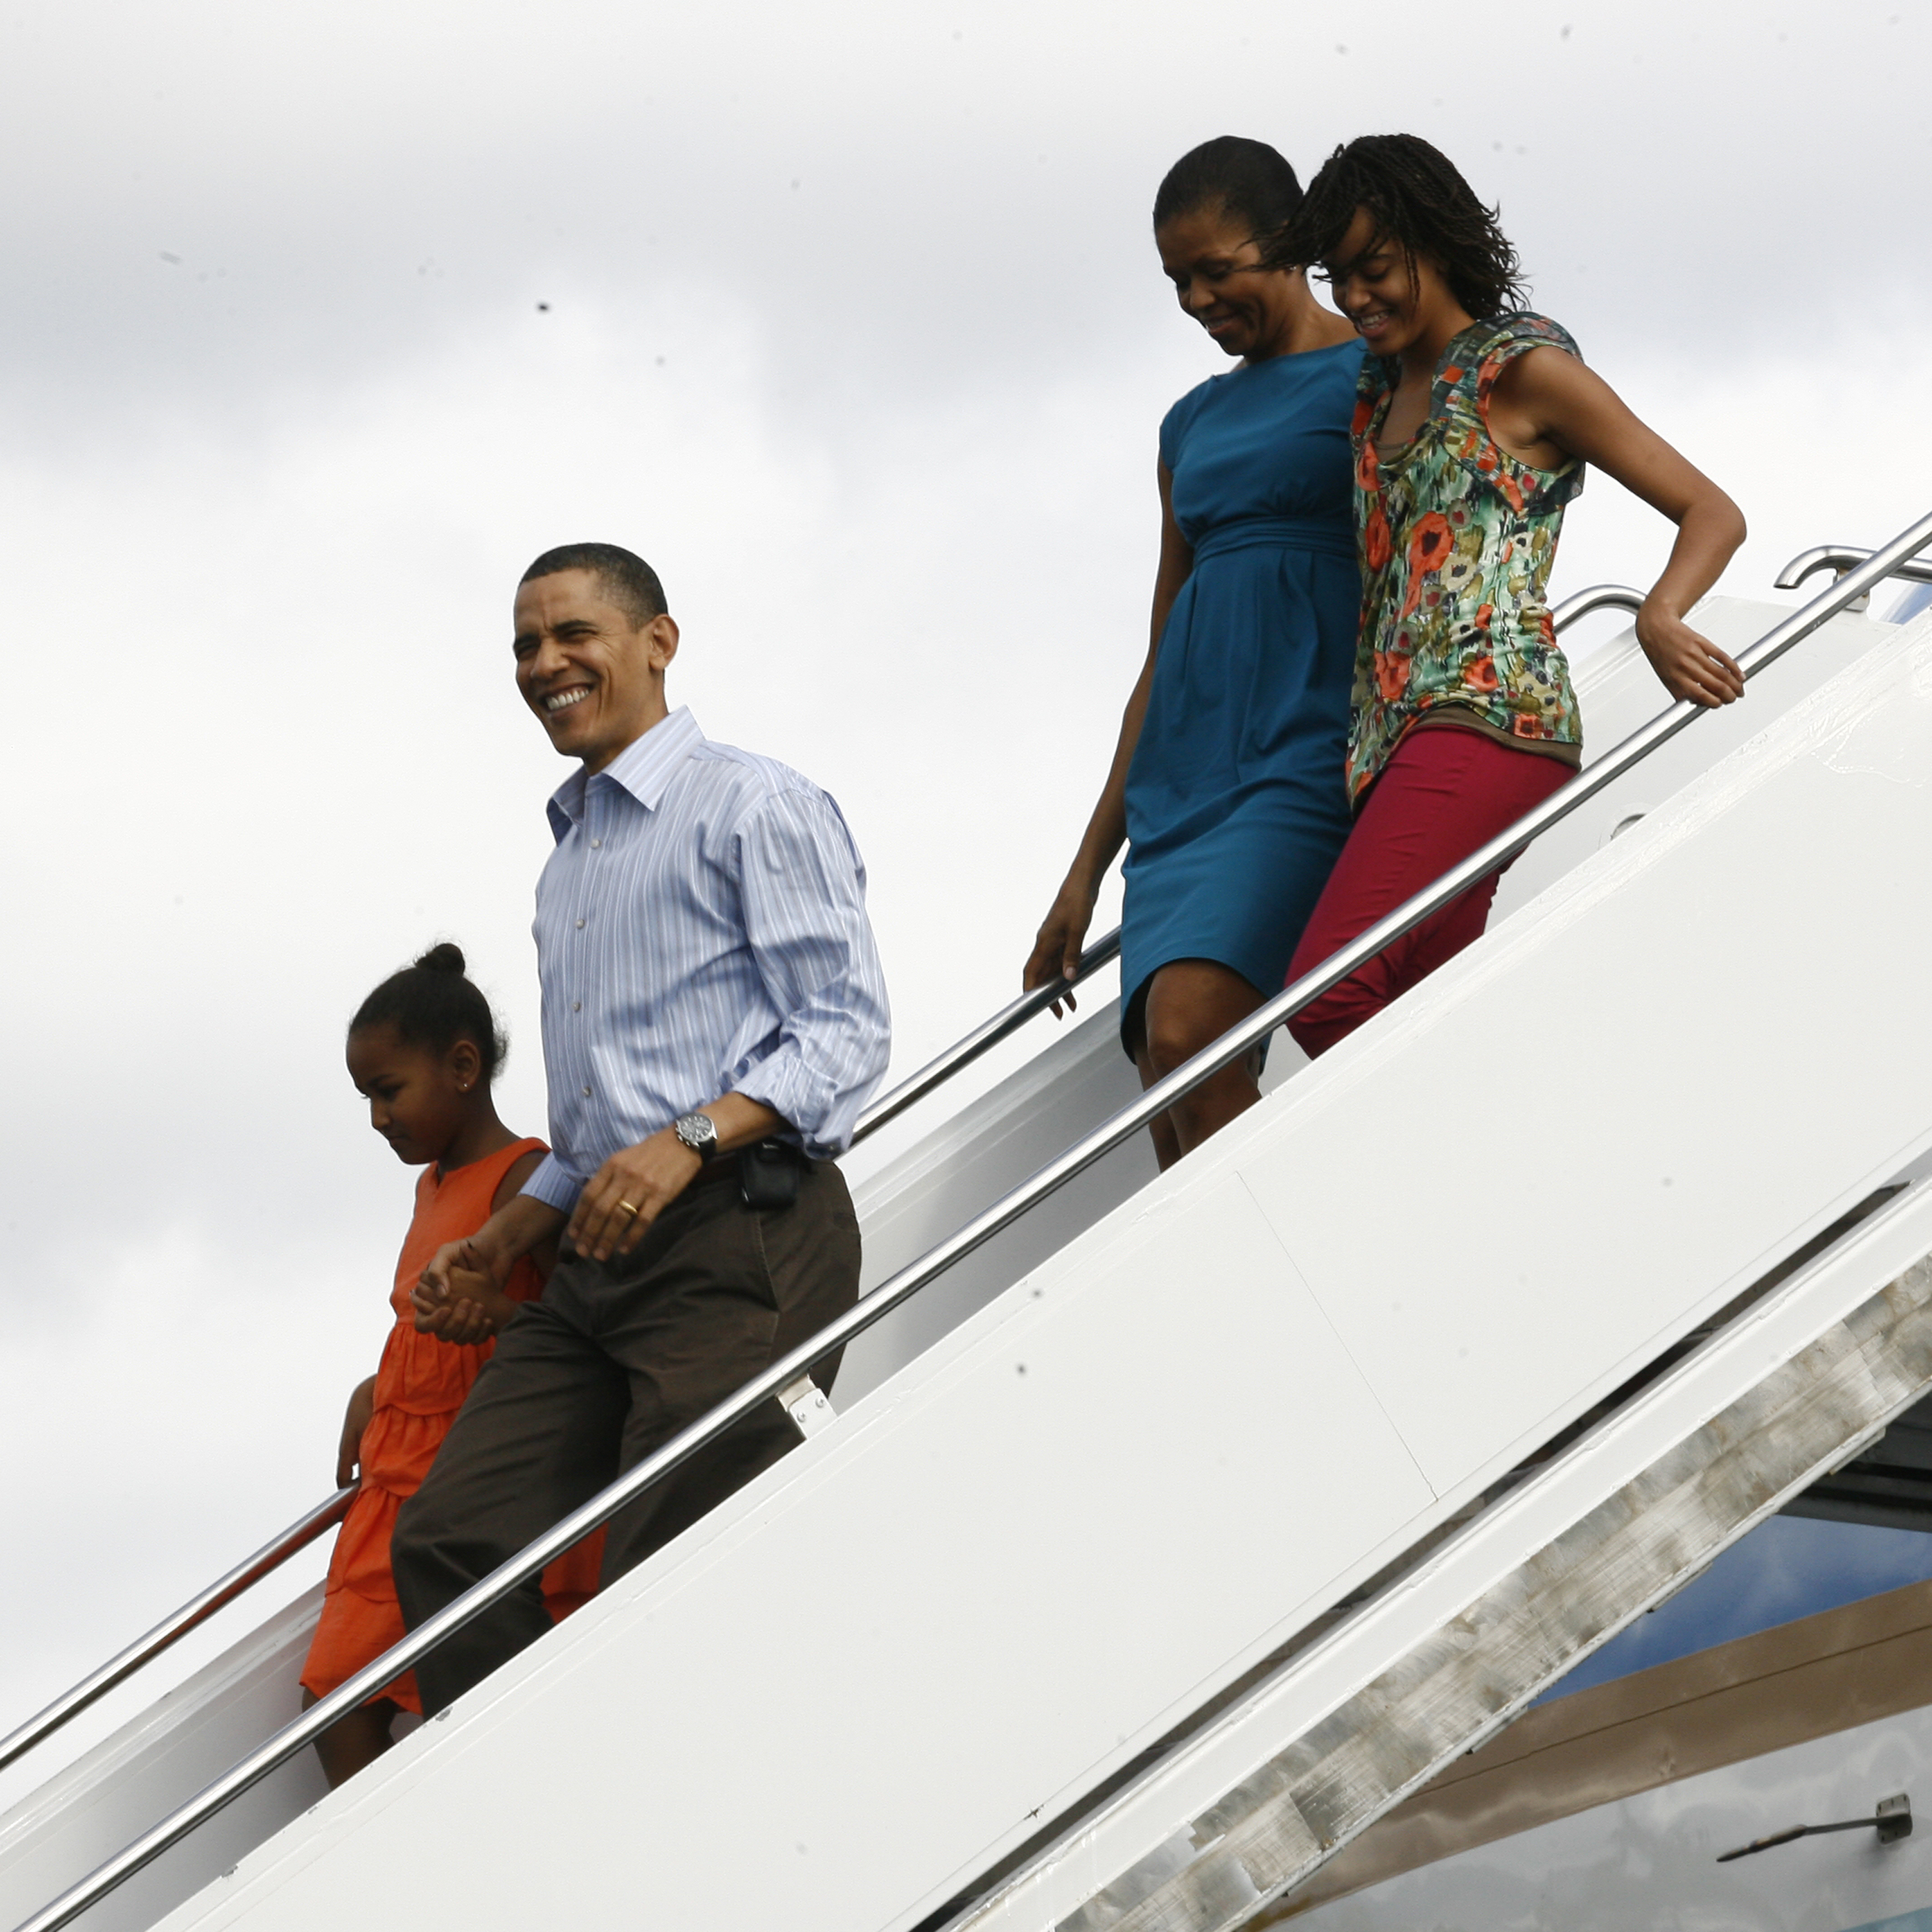 U.S. President Barack Obama, first lady Michelle Obama and their children Sasha and Malia disemark from Air Force One at Hickam Air Force Base on December 24, 2009 in Honolulu, Hawaii.